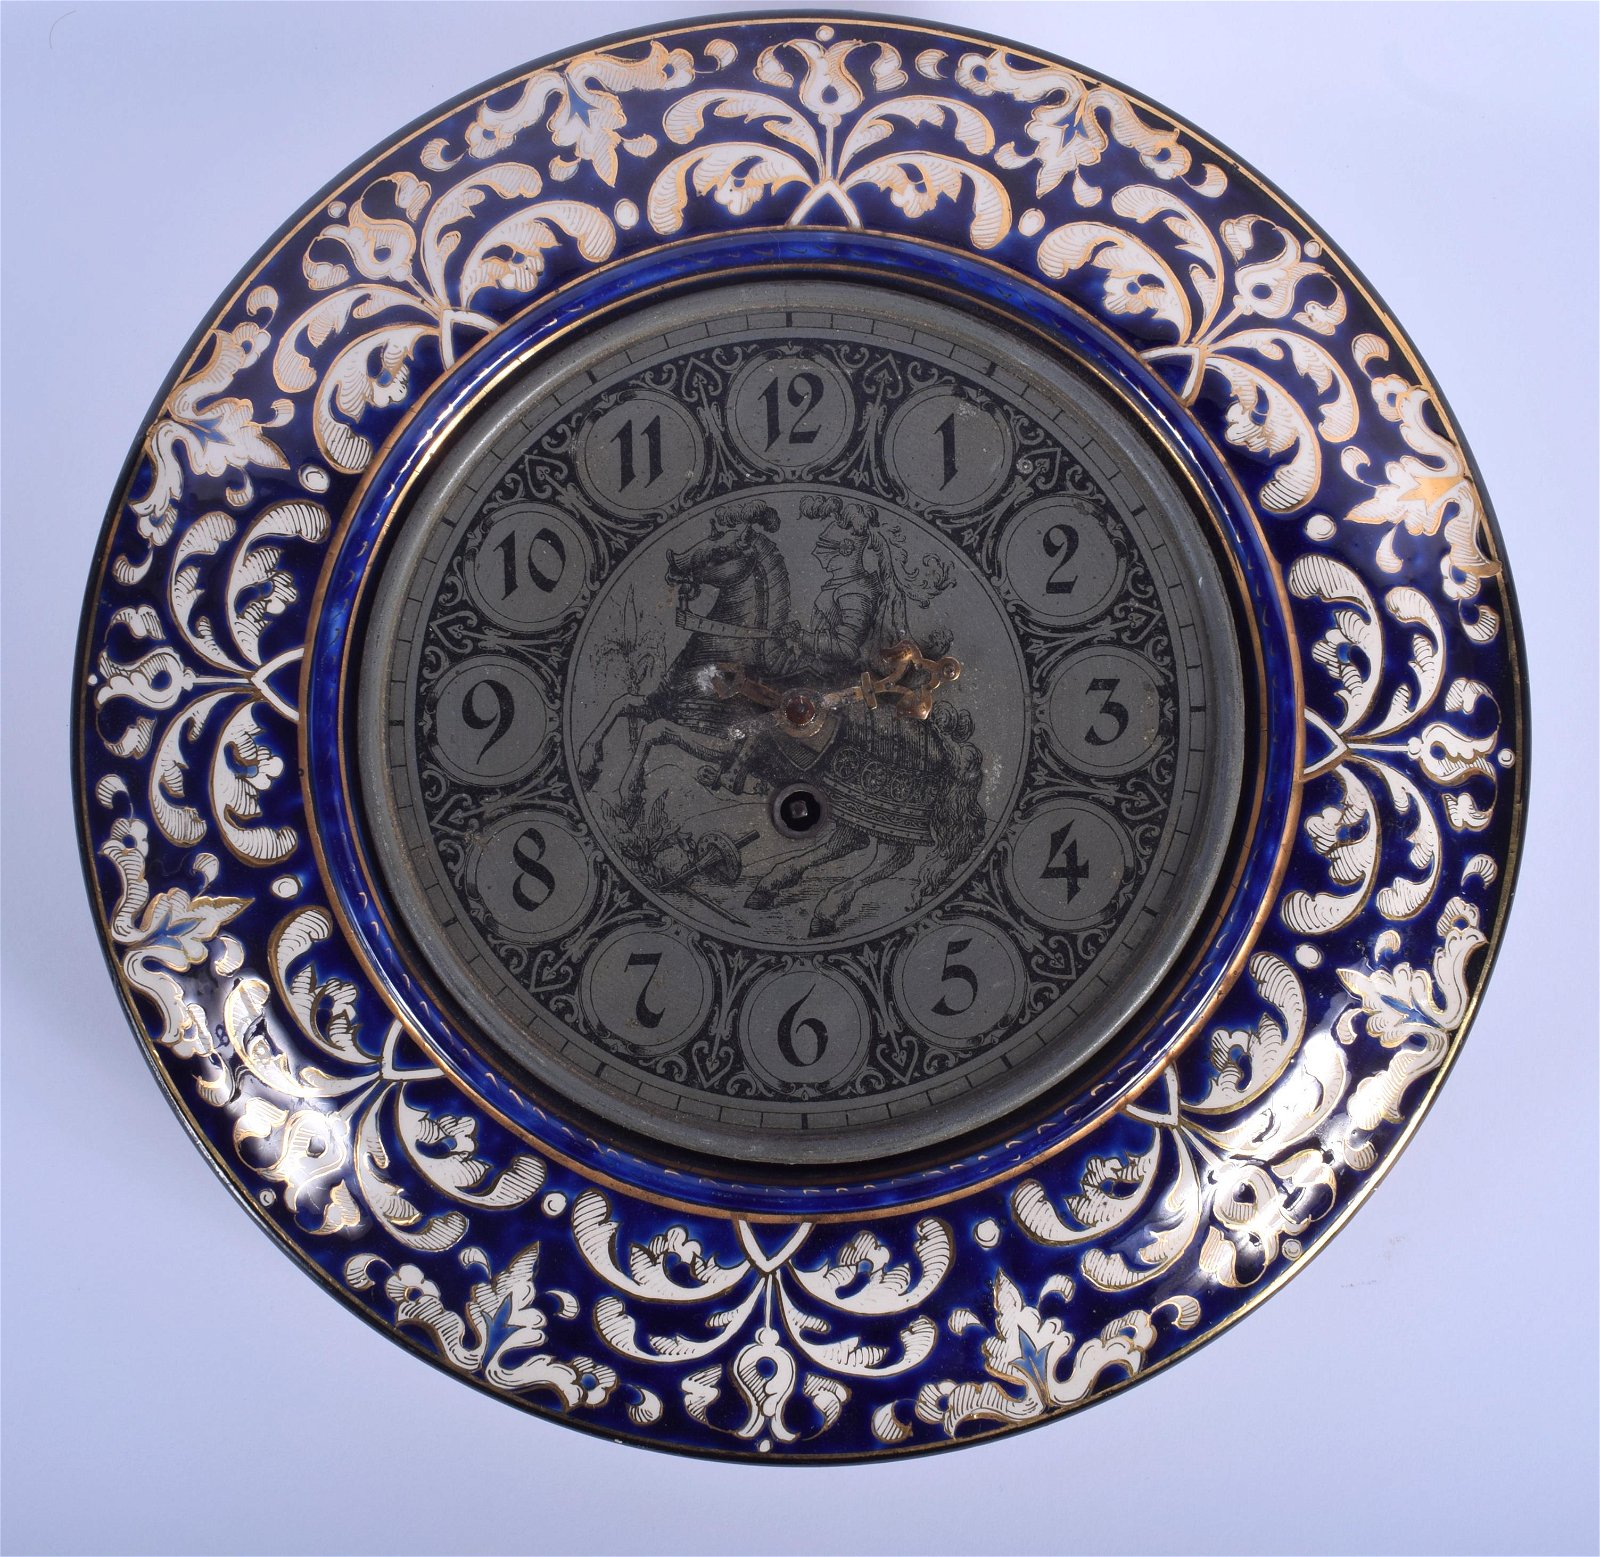 AN UNUSUAL 19TH CENTURY CONTINENTAL POTTERY FAIENCE